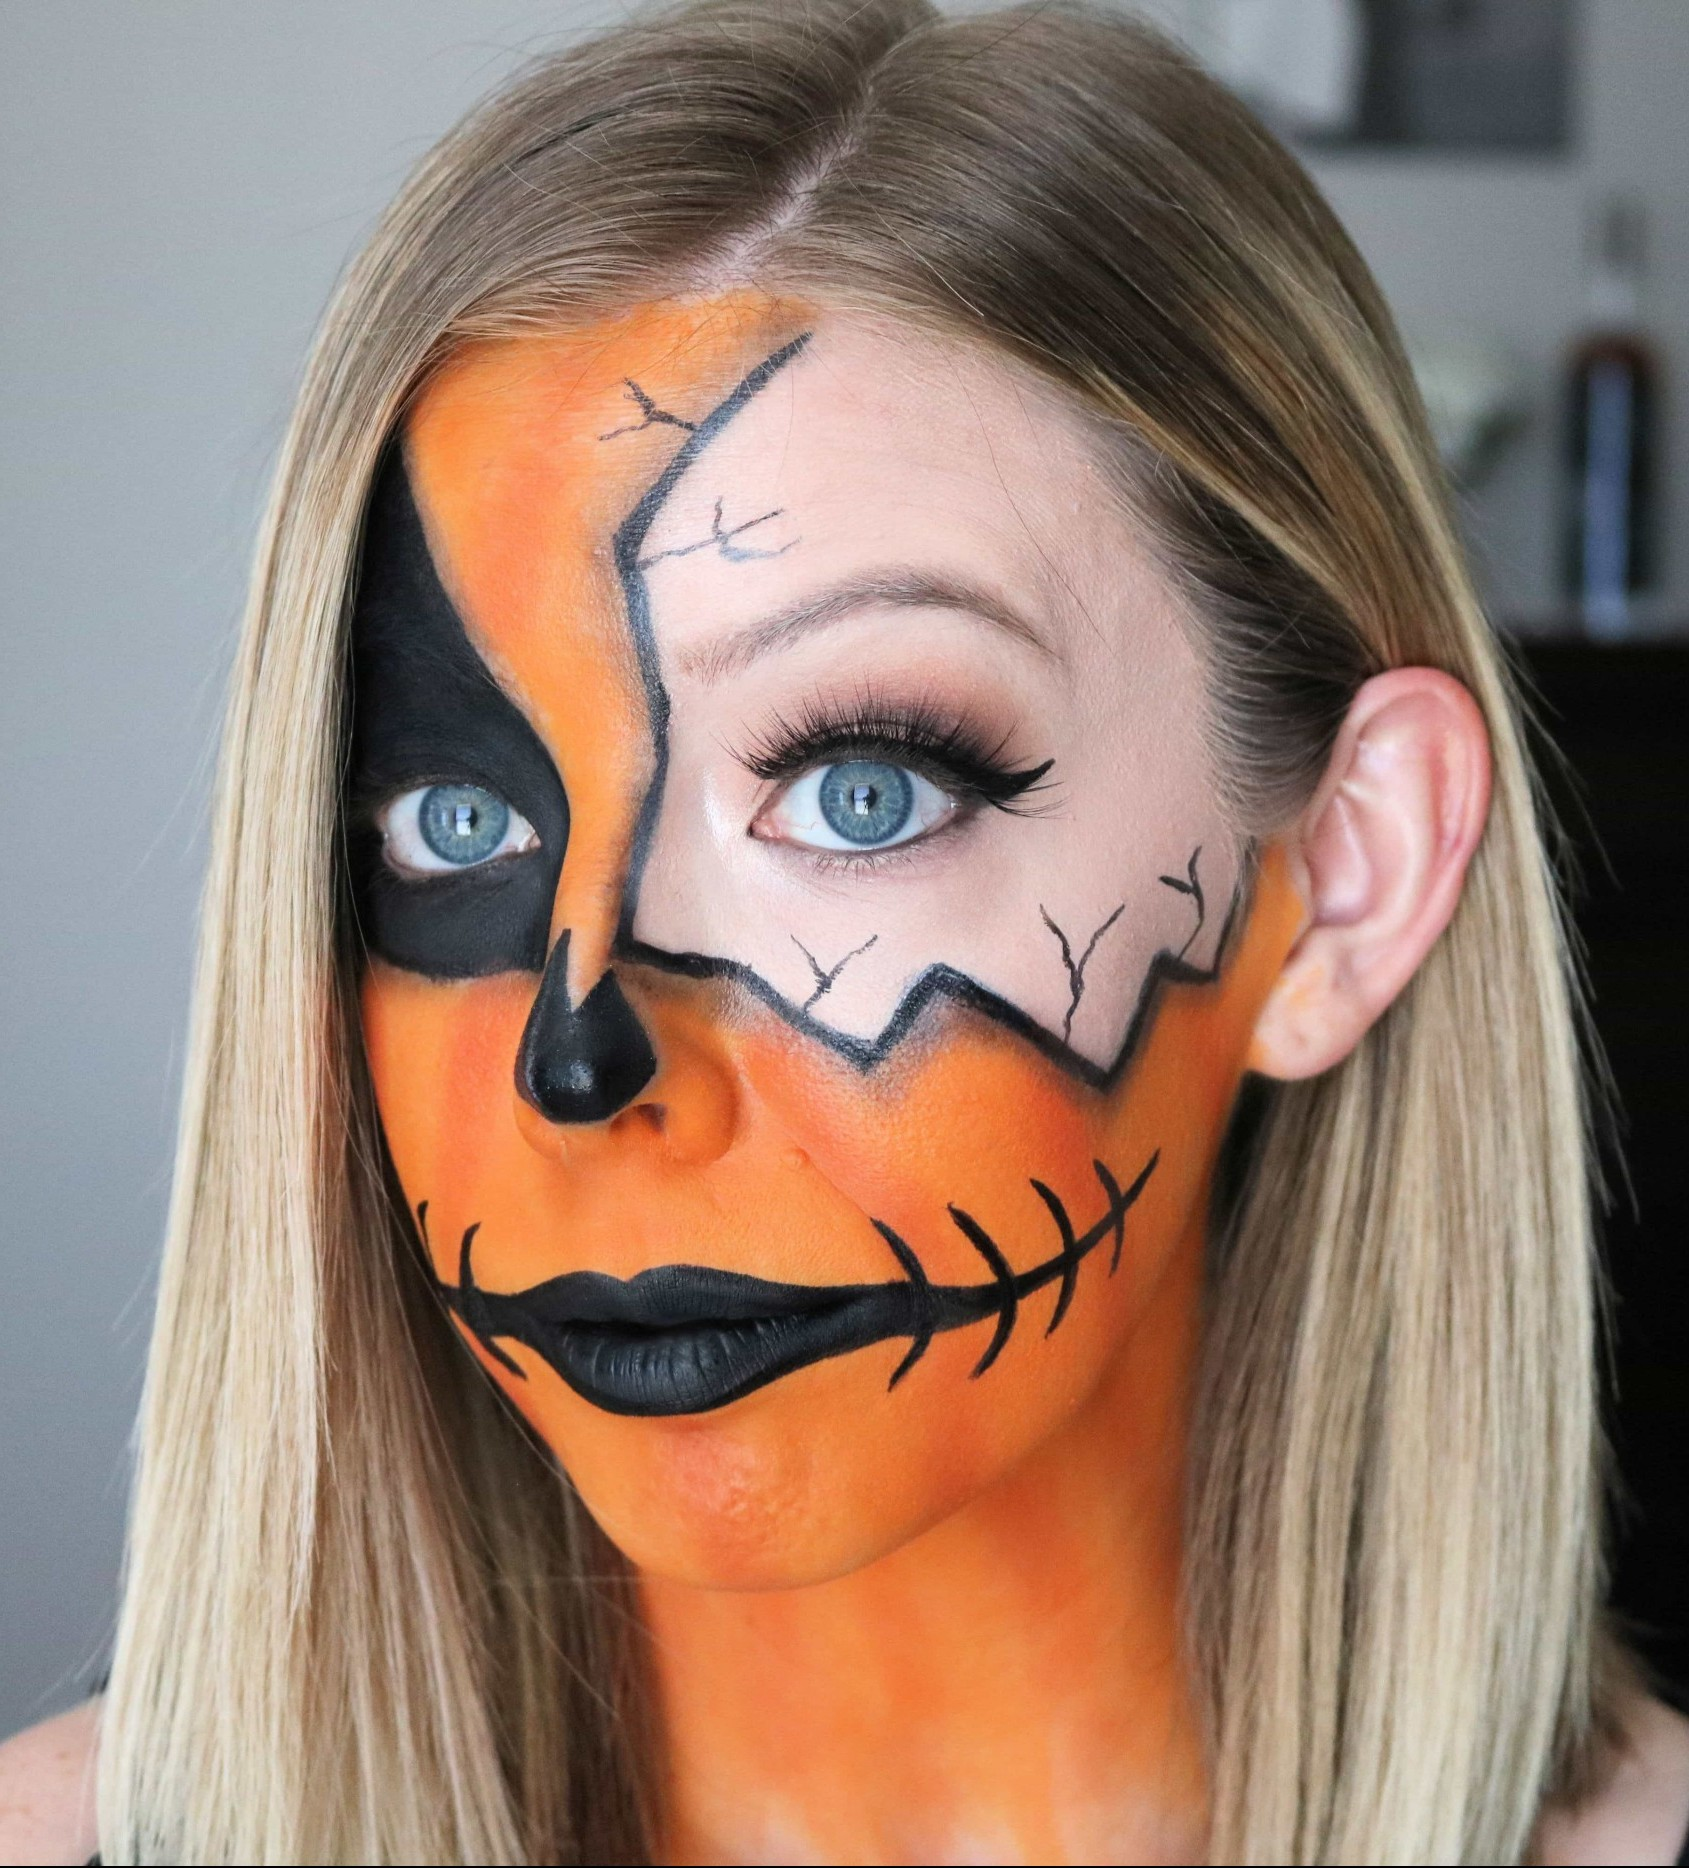 Want a spooky and fun Halloween makeup look this year? Check out my Easy Cracked Pumpkin Makeup Halloween video tutorial! This DIY pumpkin half face makeup is super easy to create and both cute and creepy! #pumpkinmakeup #halloweenmakeup #halloweenmakeuptutorial #halloween